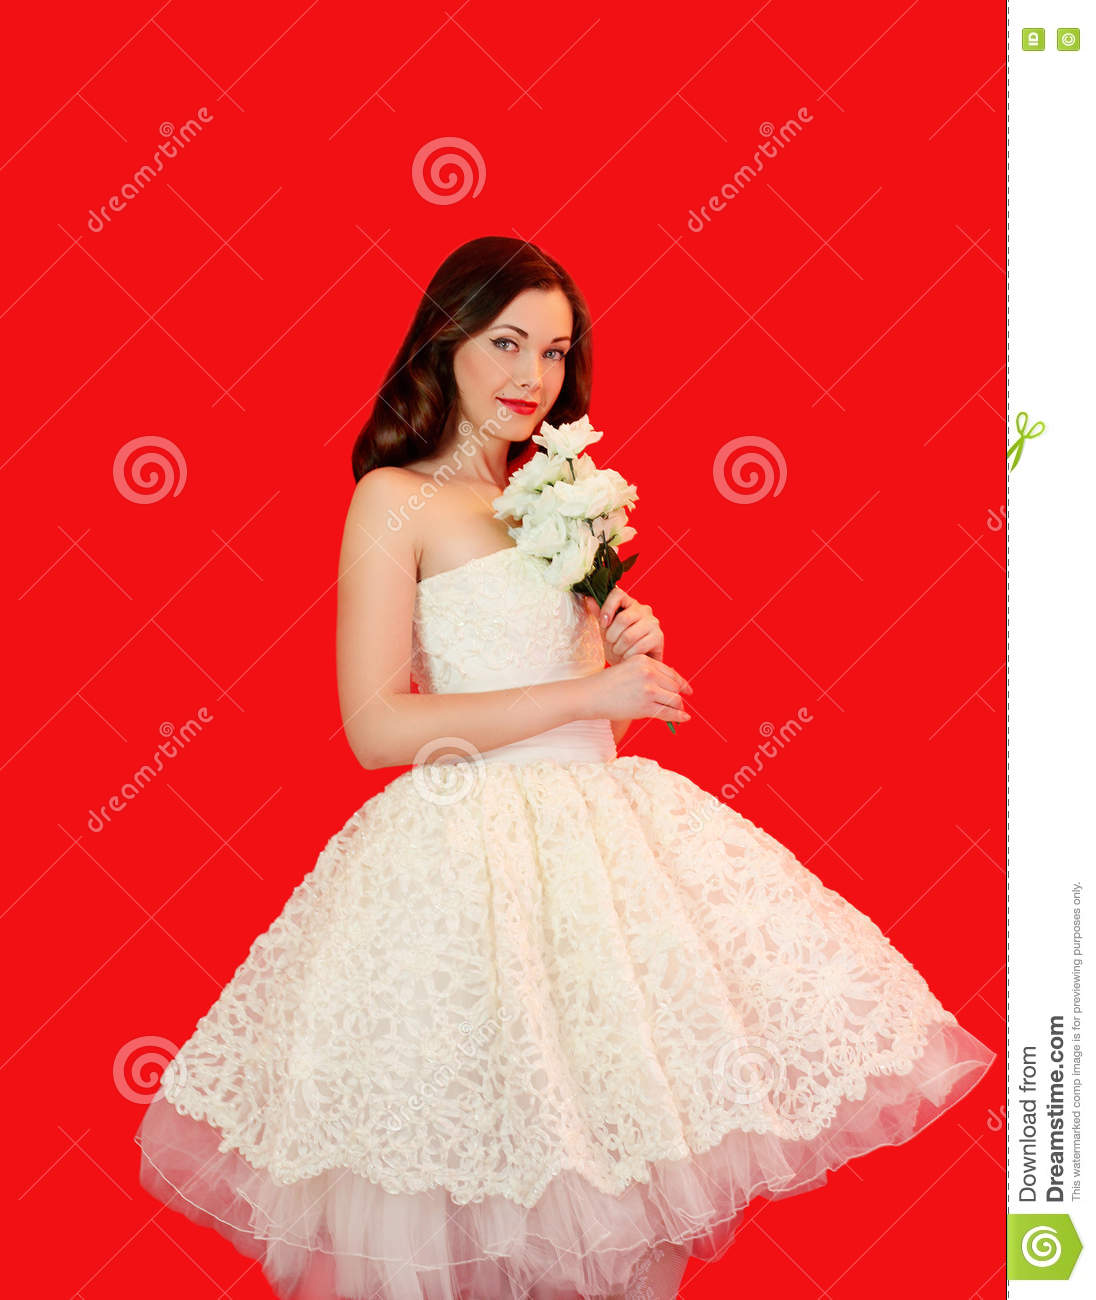 Beautiful Bride Woman In White Wedding Dress With Bouquet Of Flowers